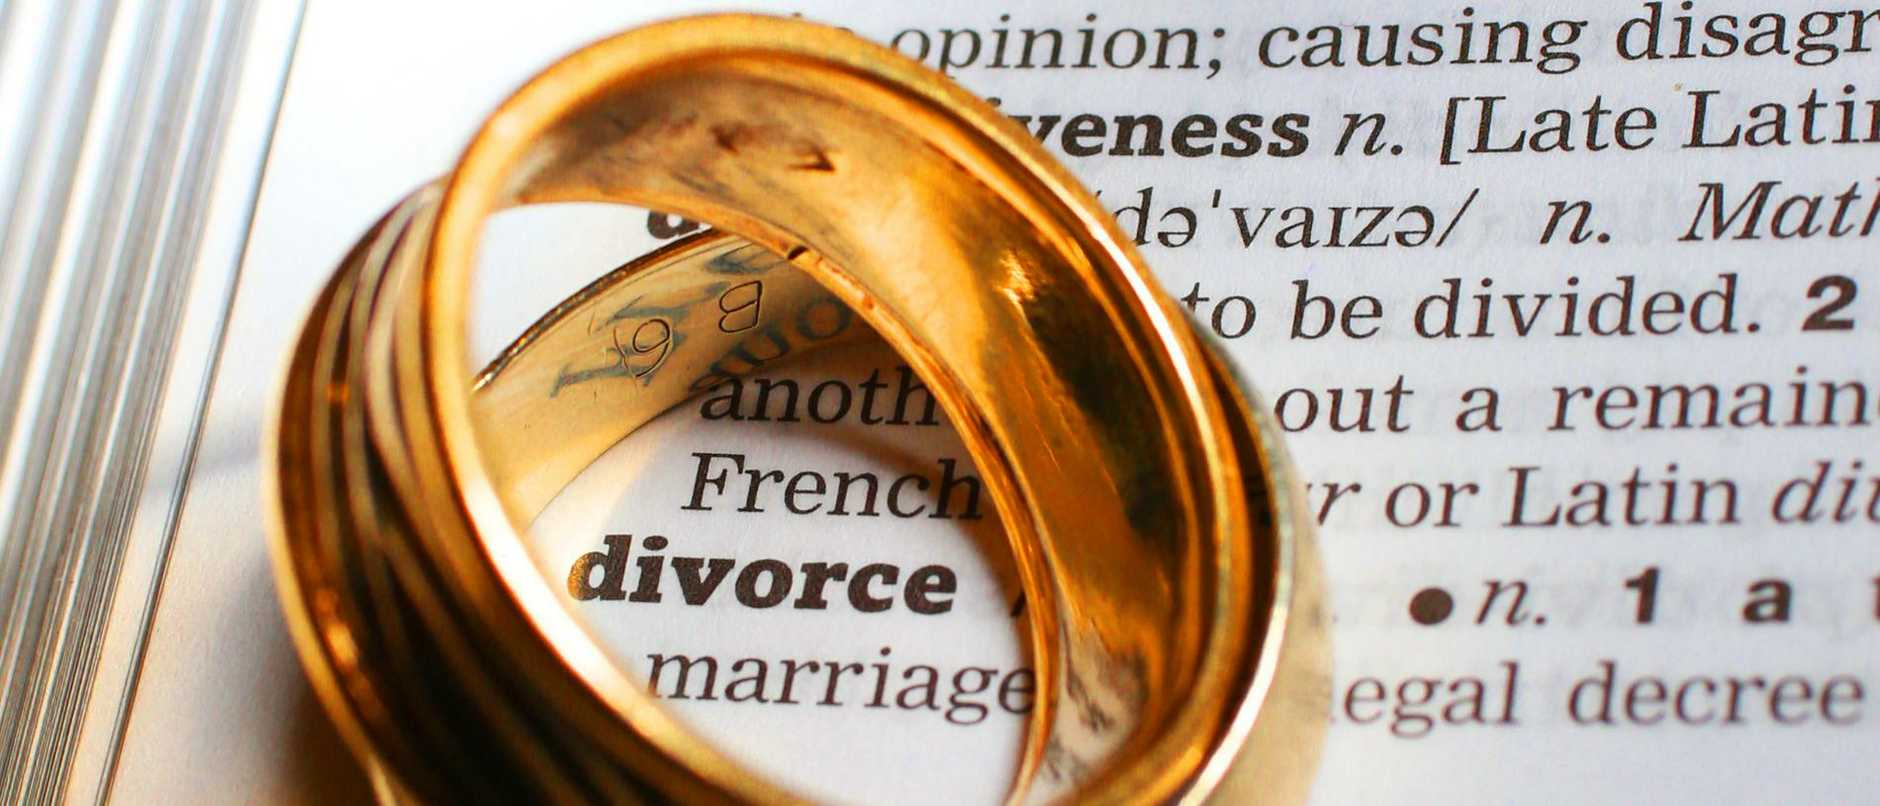 generic pic for divorce story 2 wedding rings